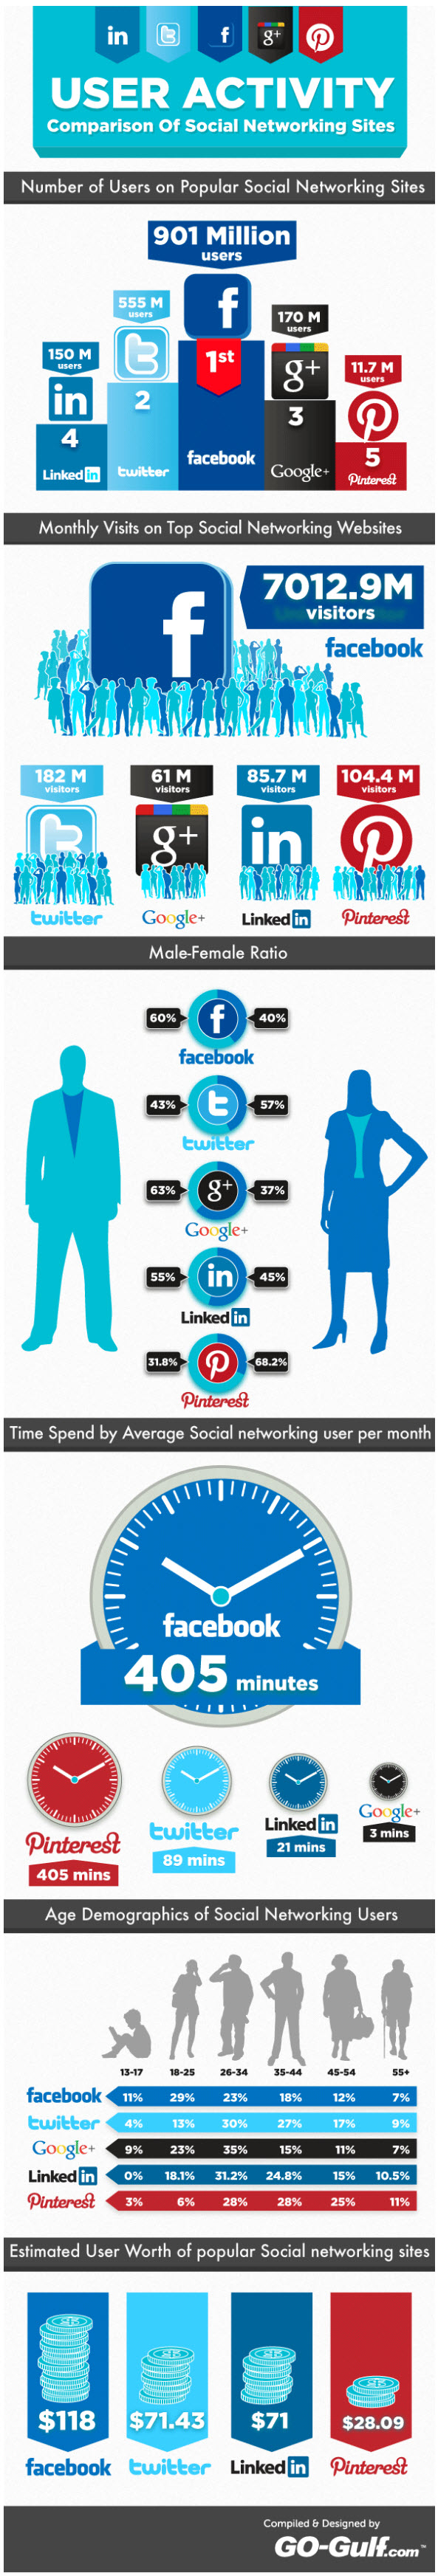 User-Activity-On-Social-Networks-infographic